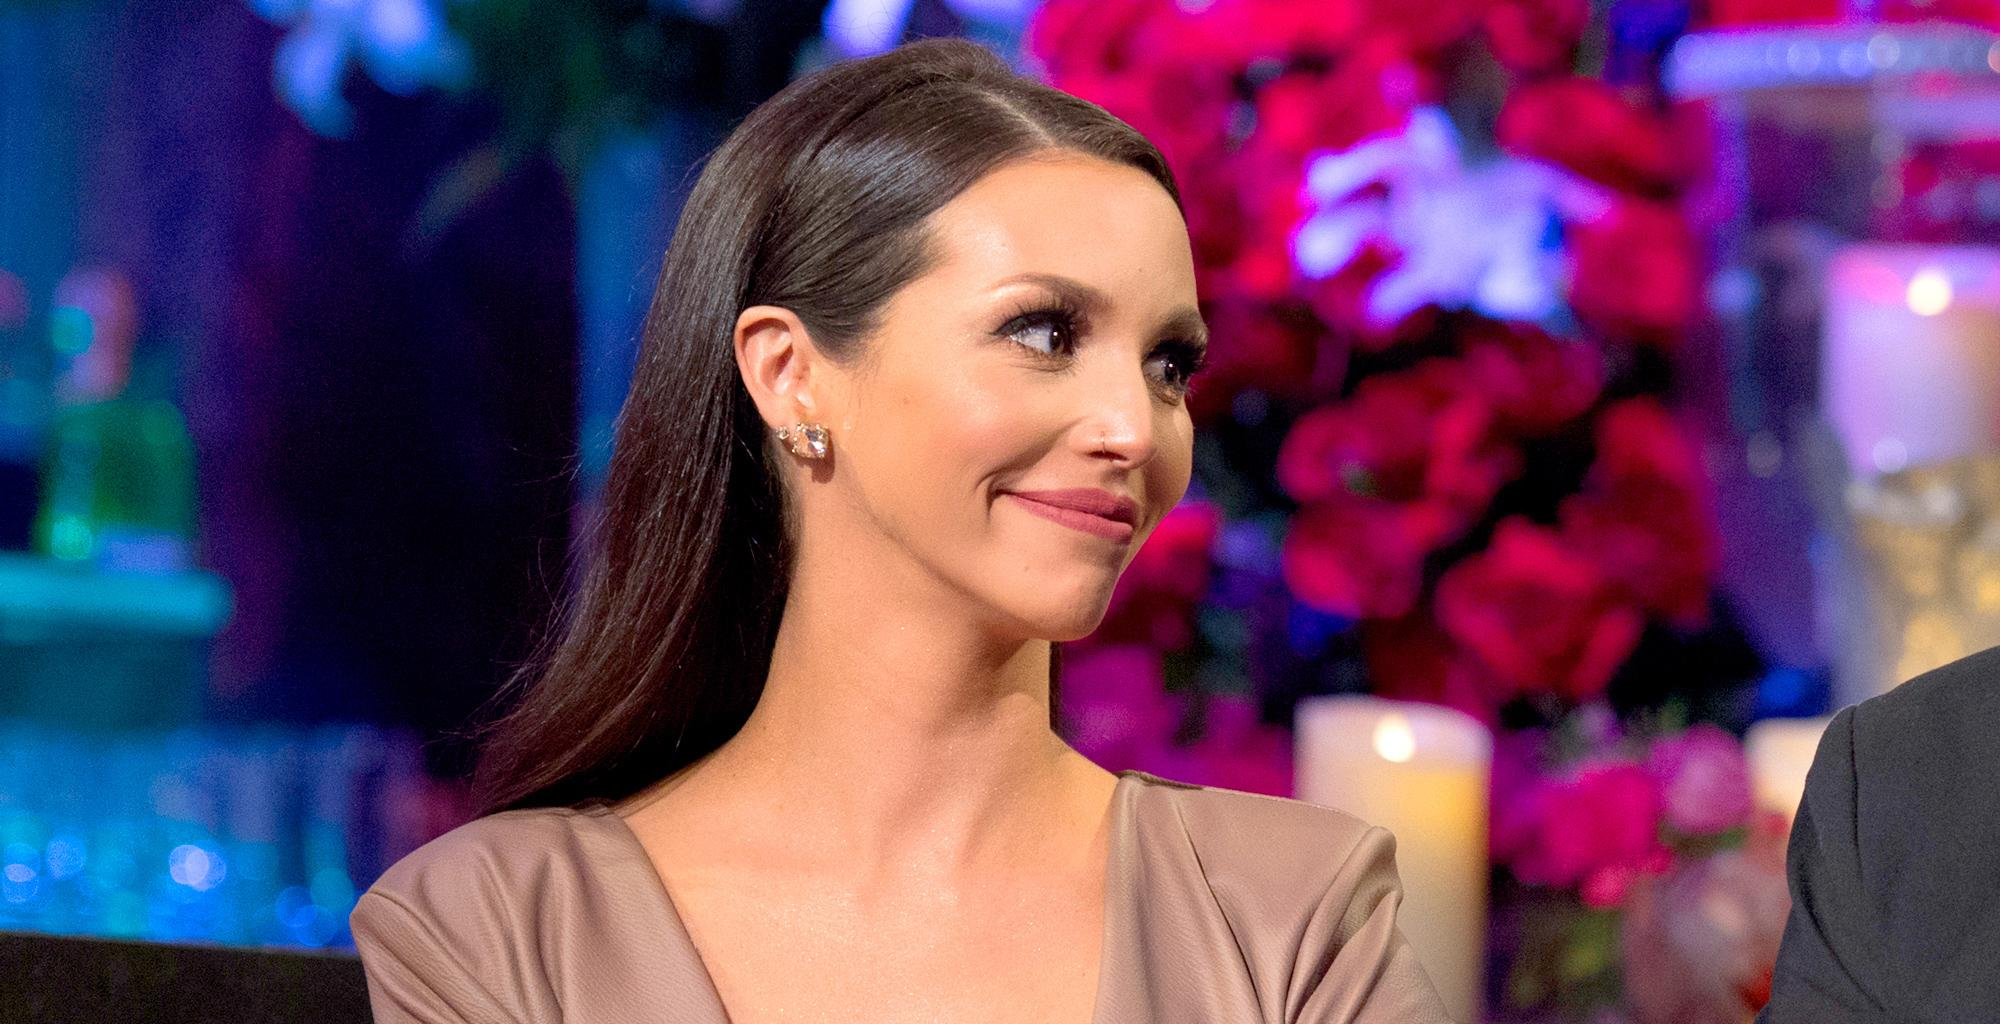 Scheana Shay Shamed For Wearing Exposing Bodysuit At 34 - She Claps Back